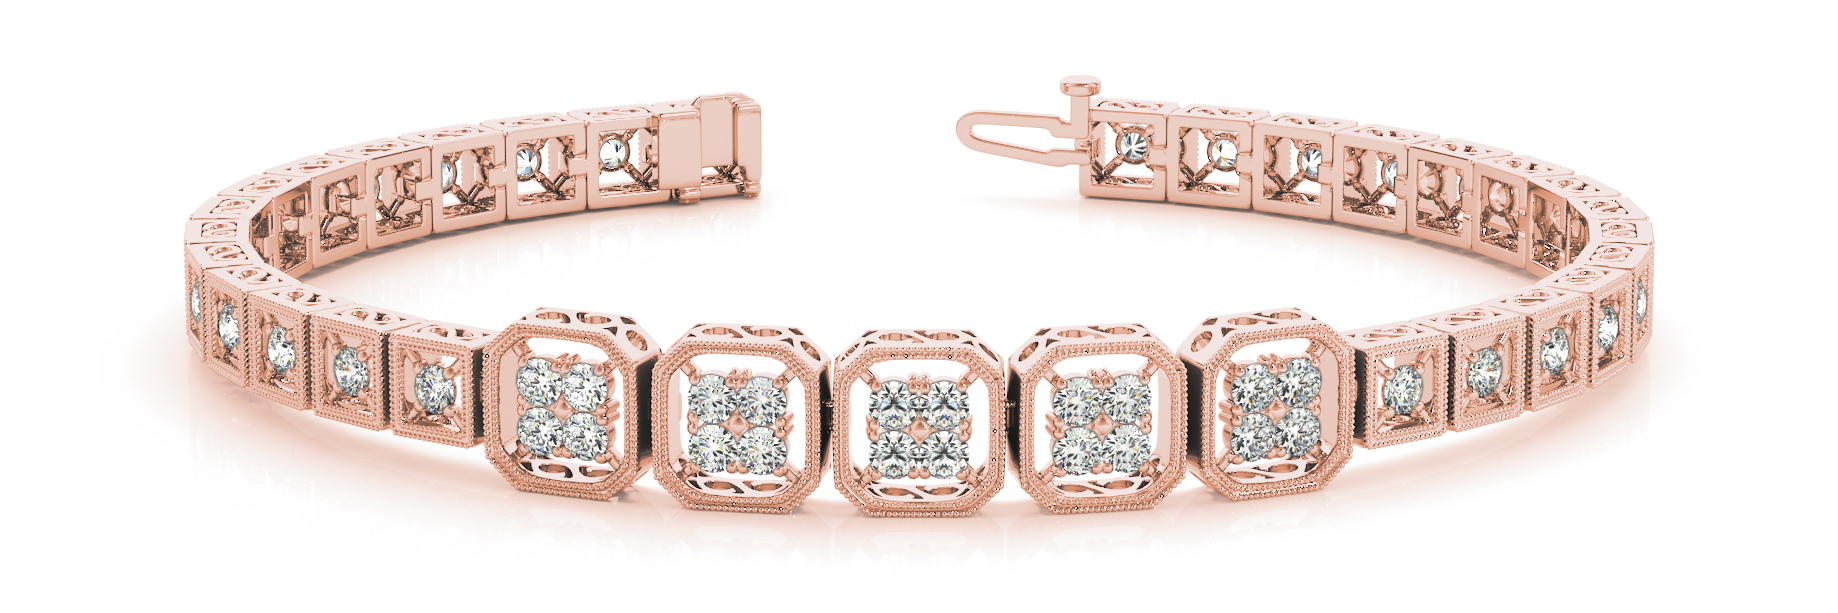 Quad Octagon Round Diamond Filigree Bracelet Rose Gold 1.4 ct.